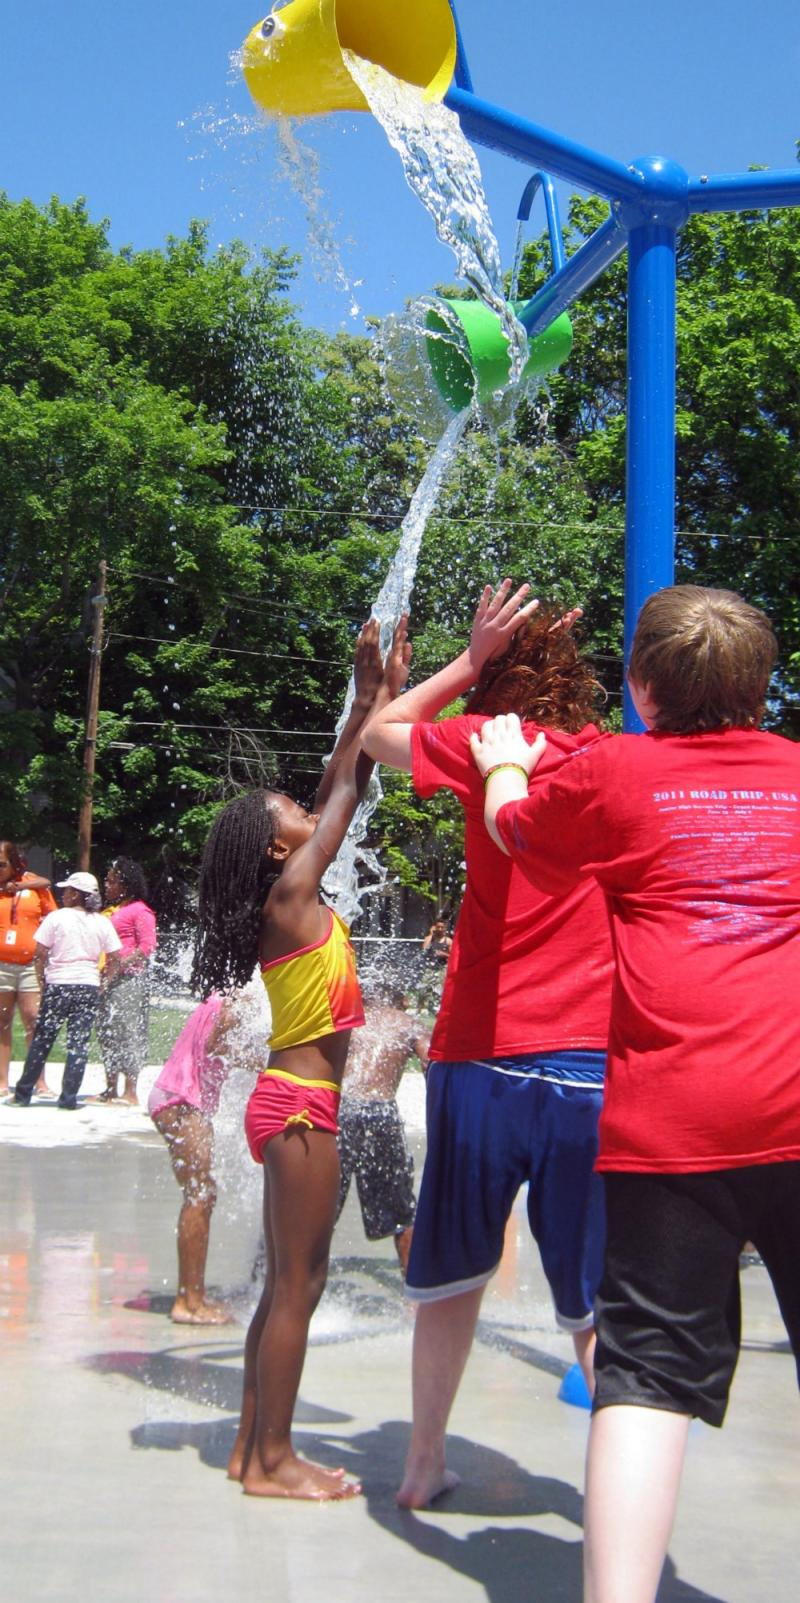 Water from the splash park will be re-used in the park's landscape irrigation system.